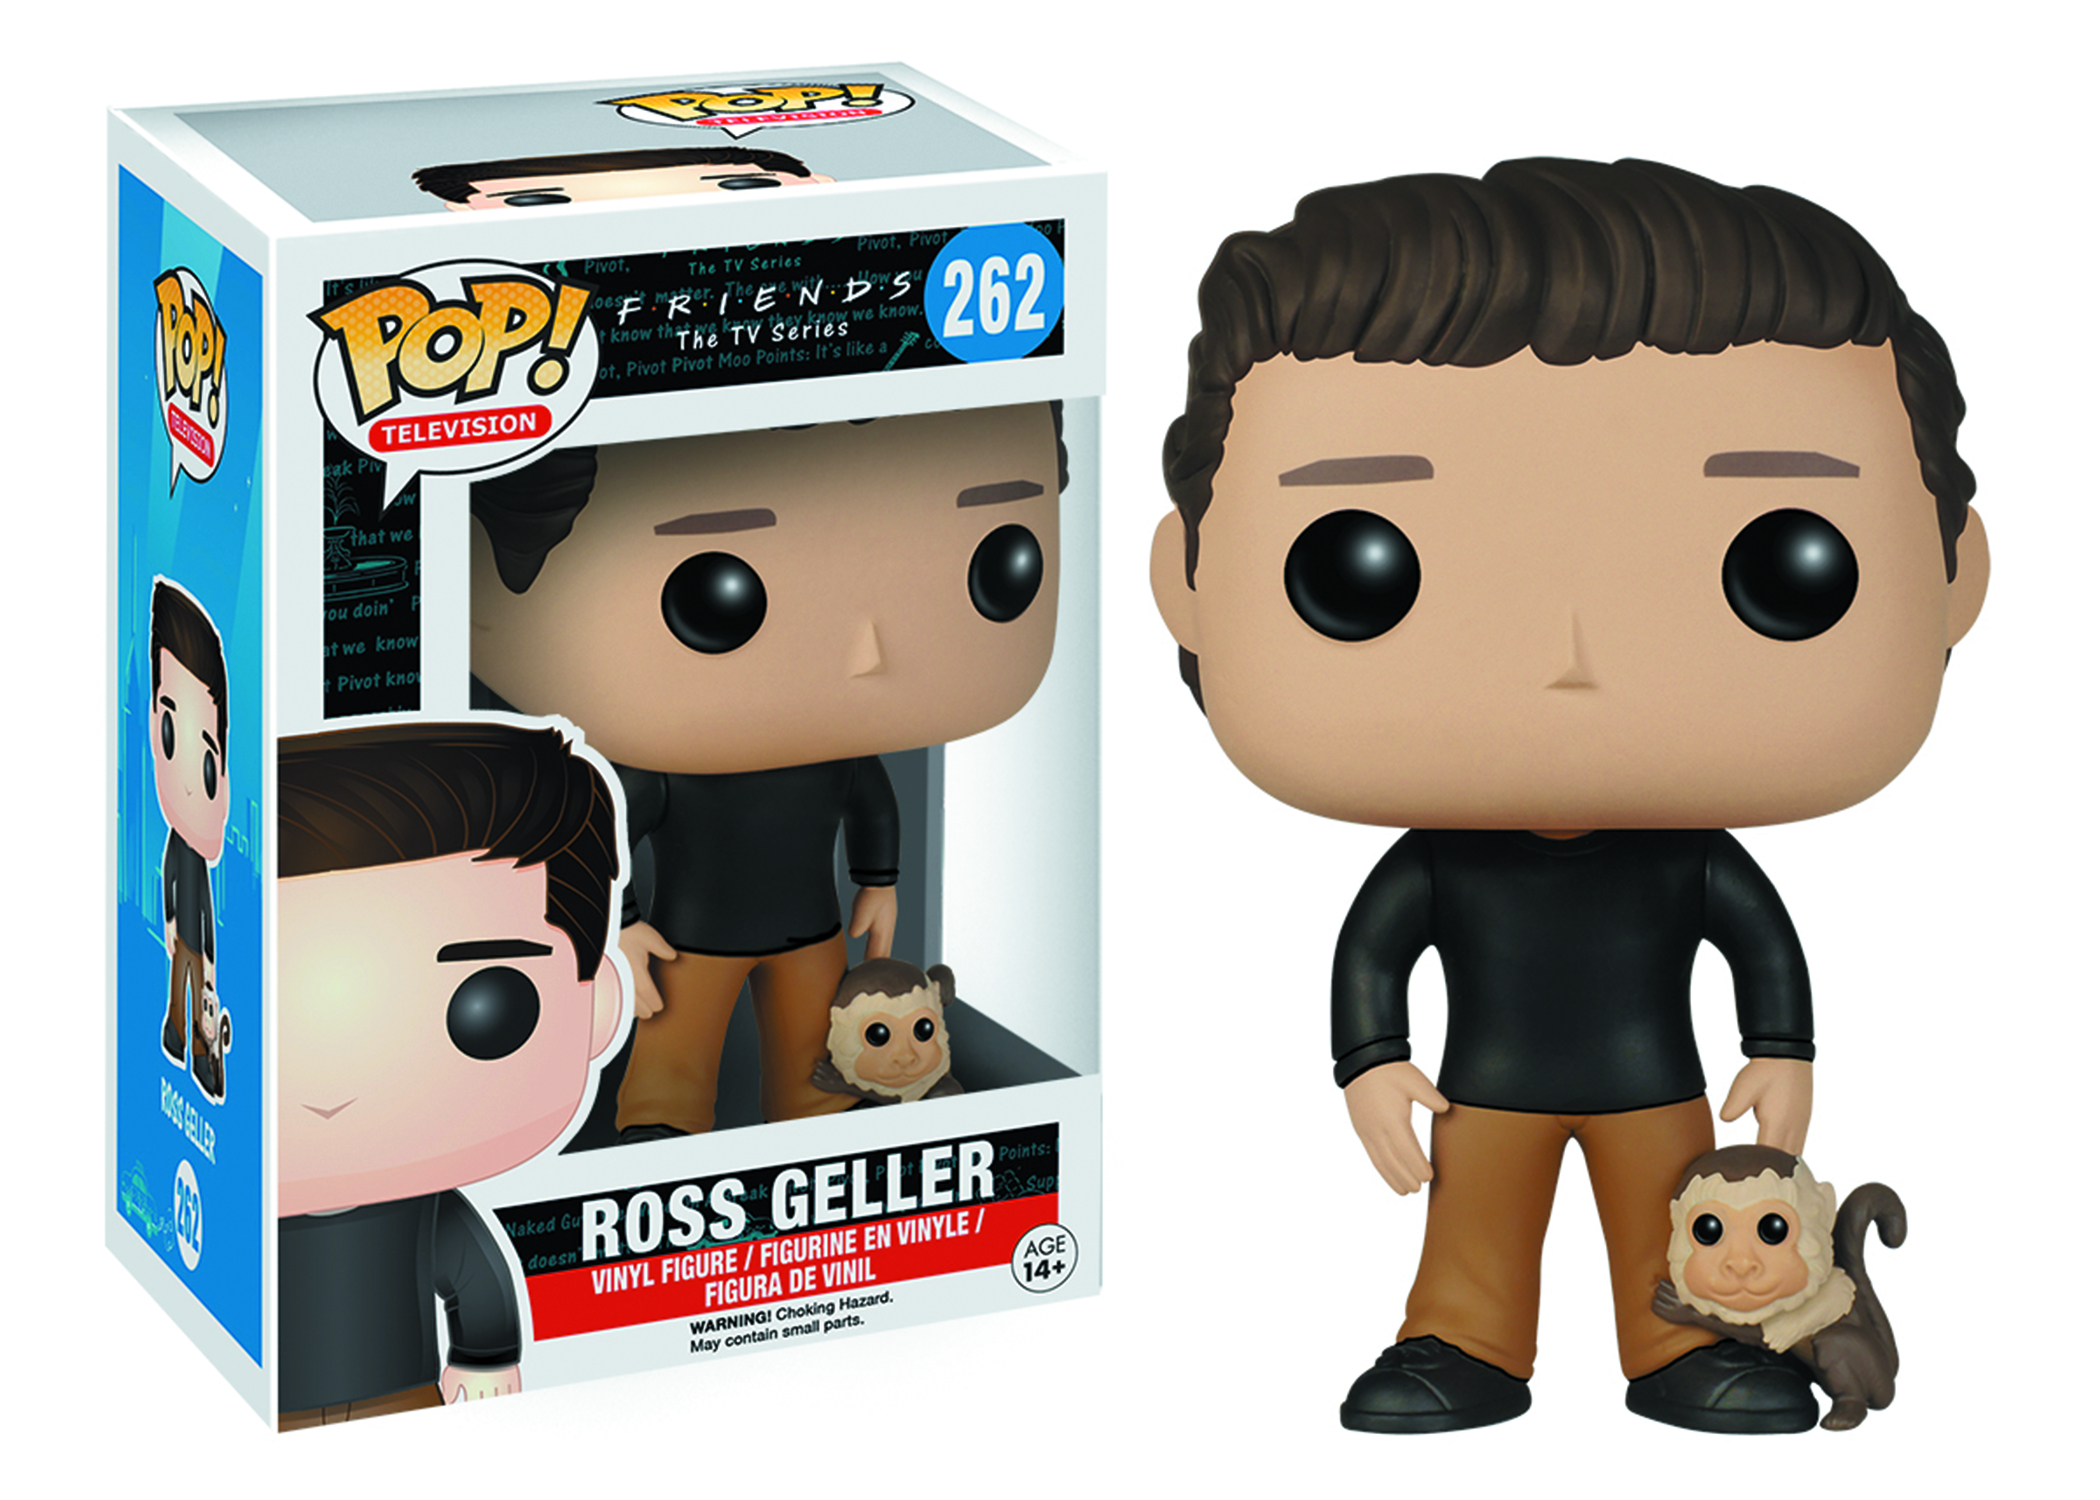 POP FRIENDS ROSS GELLER VINYL FIG